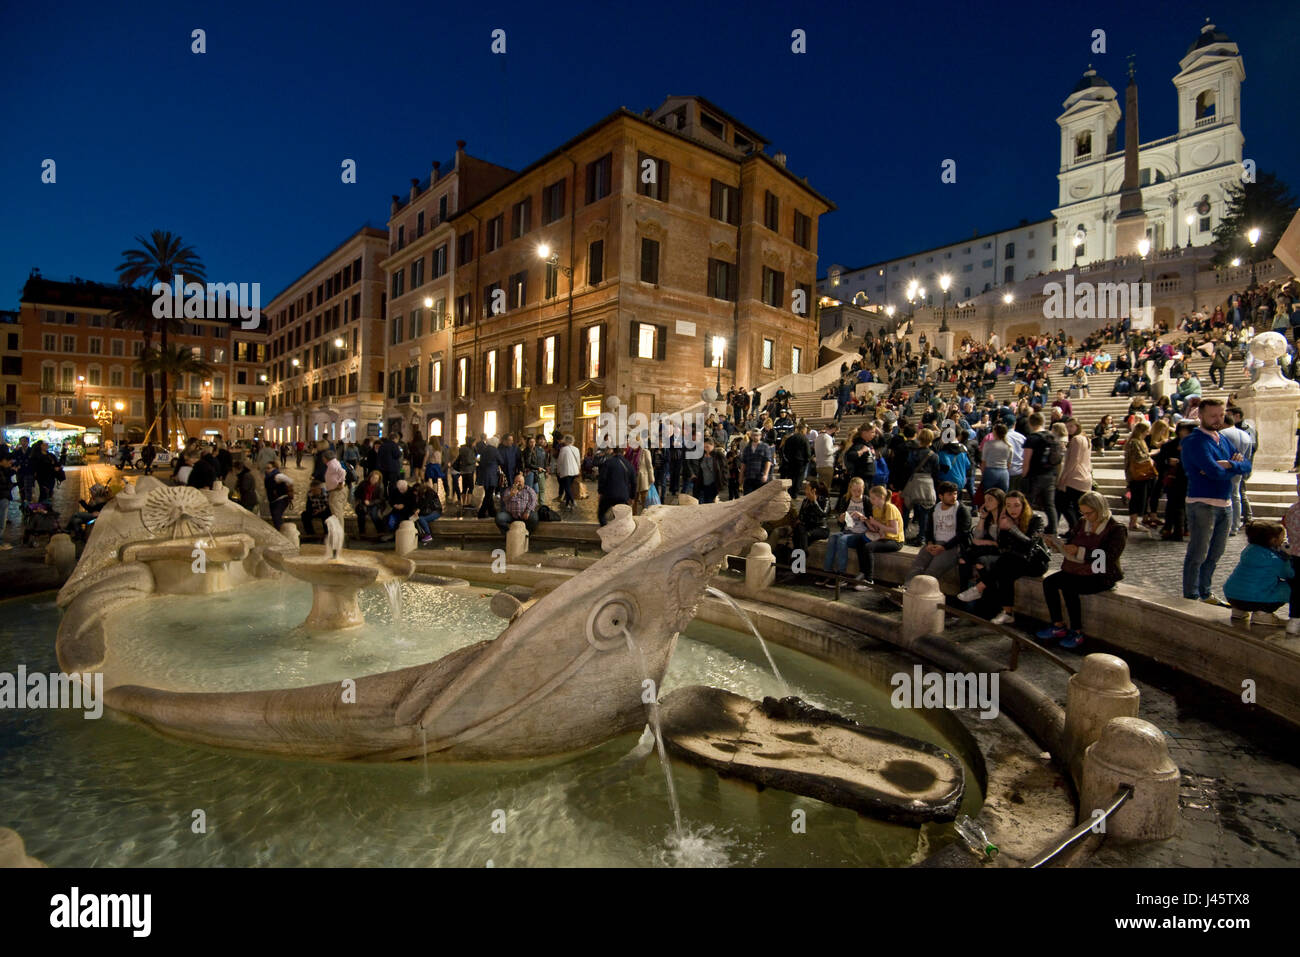 Spanish Steps in Rome with tourists and visitors evening, night with the Trinità dei Monti church background - Stock Image